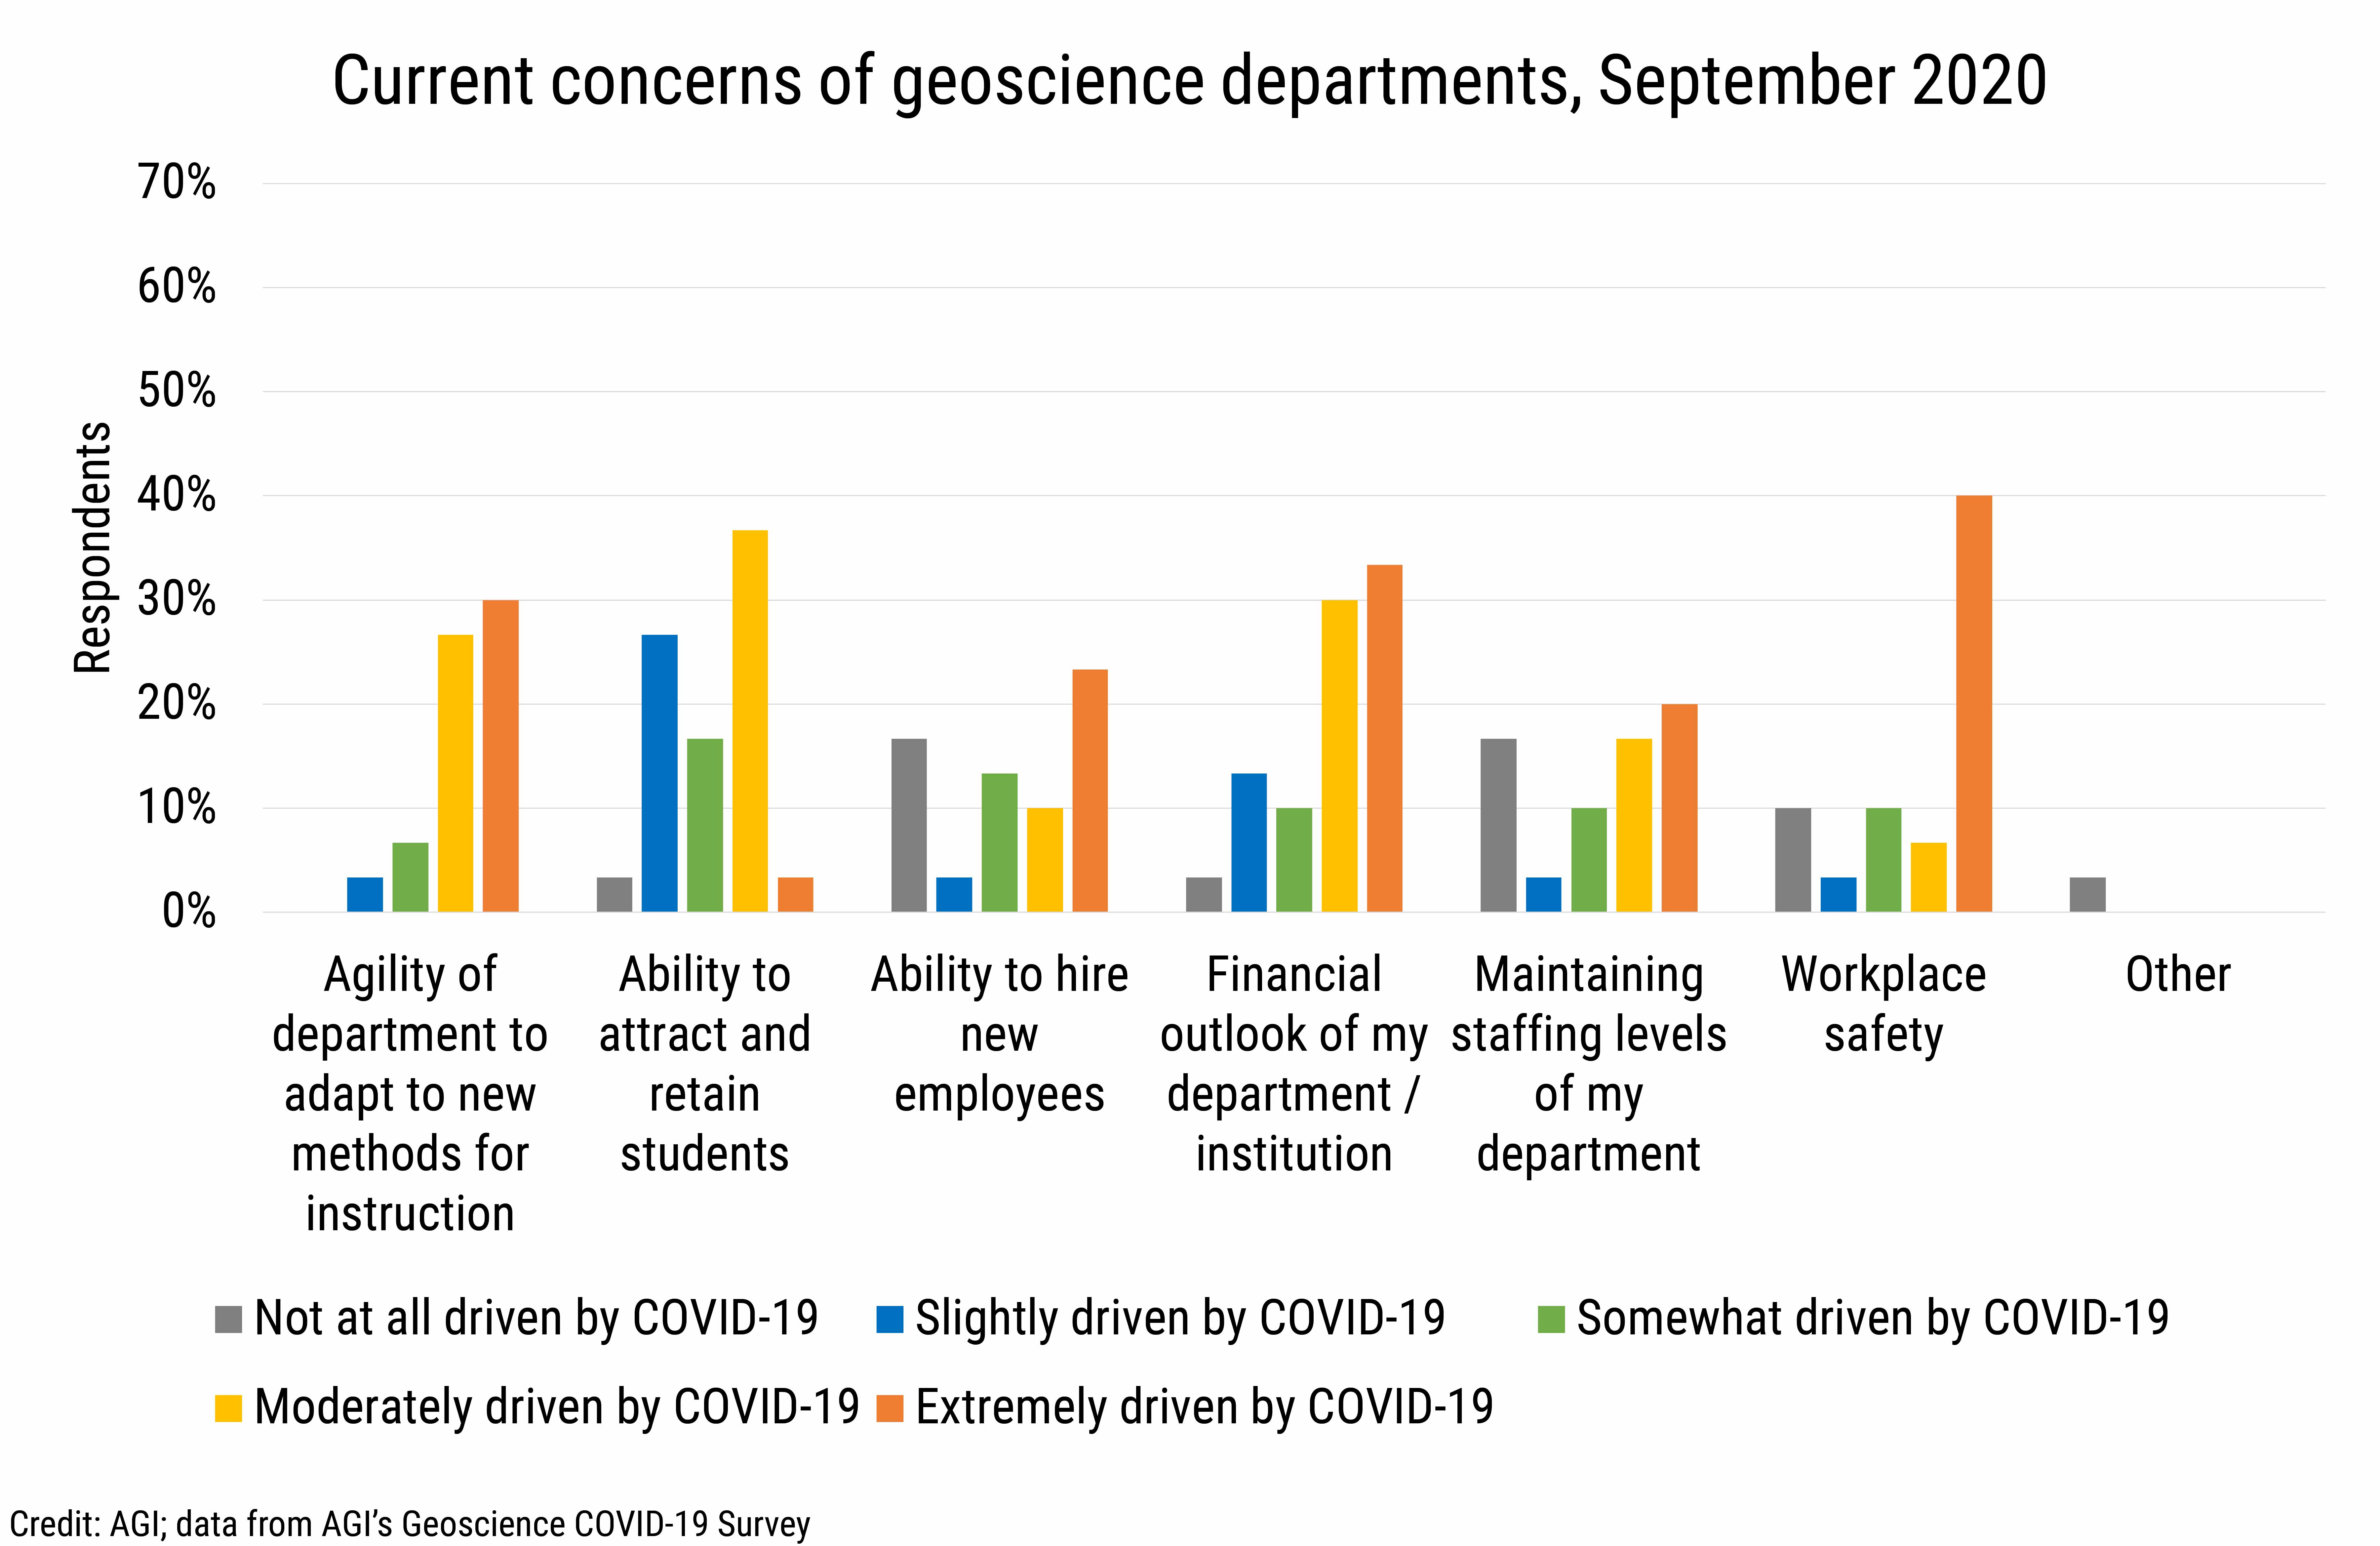 DB_2020-028 chart 08:  Current concerns of geoscience departments, September 2020 (Credit: AGI; data from AGI's Geoscience COVID-19 Survey)